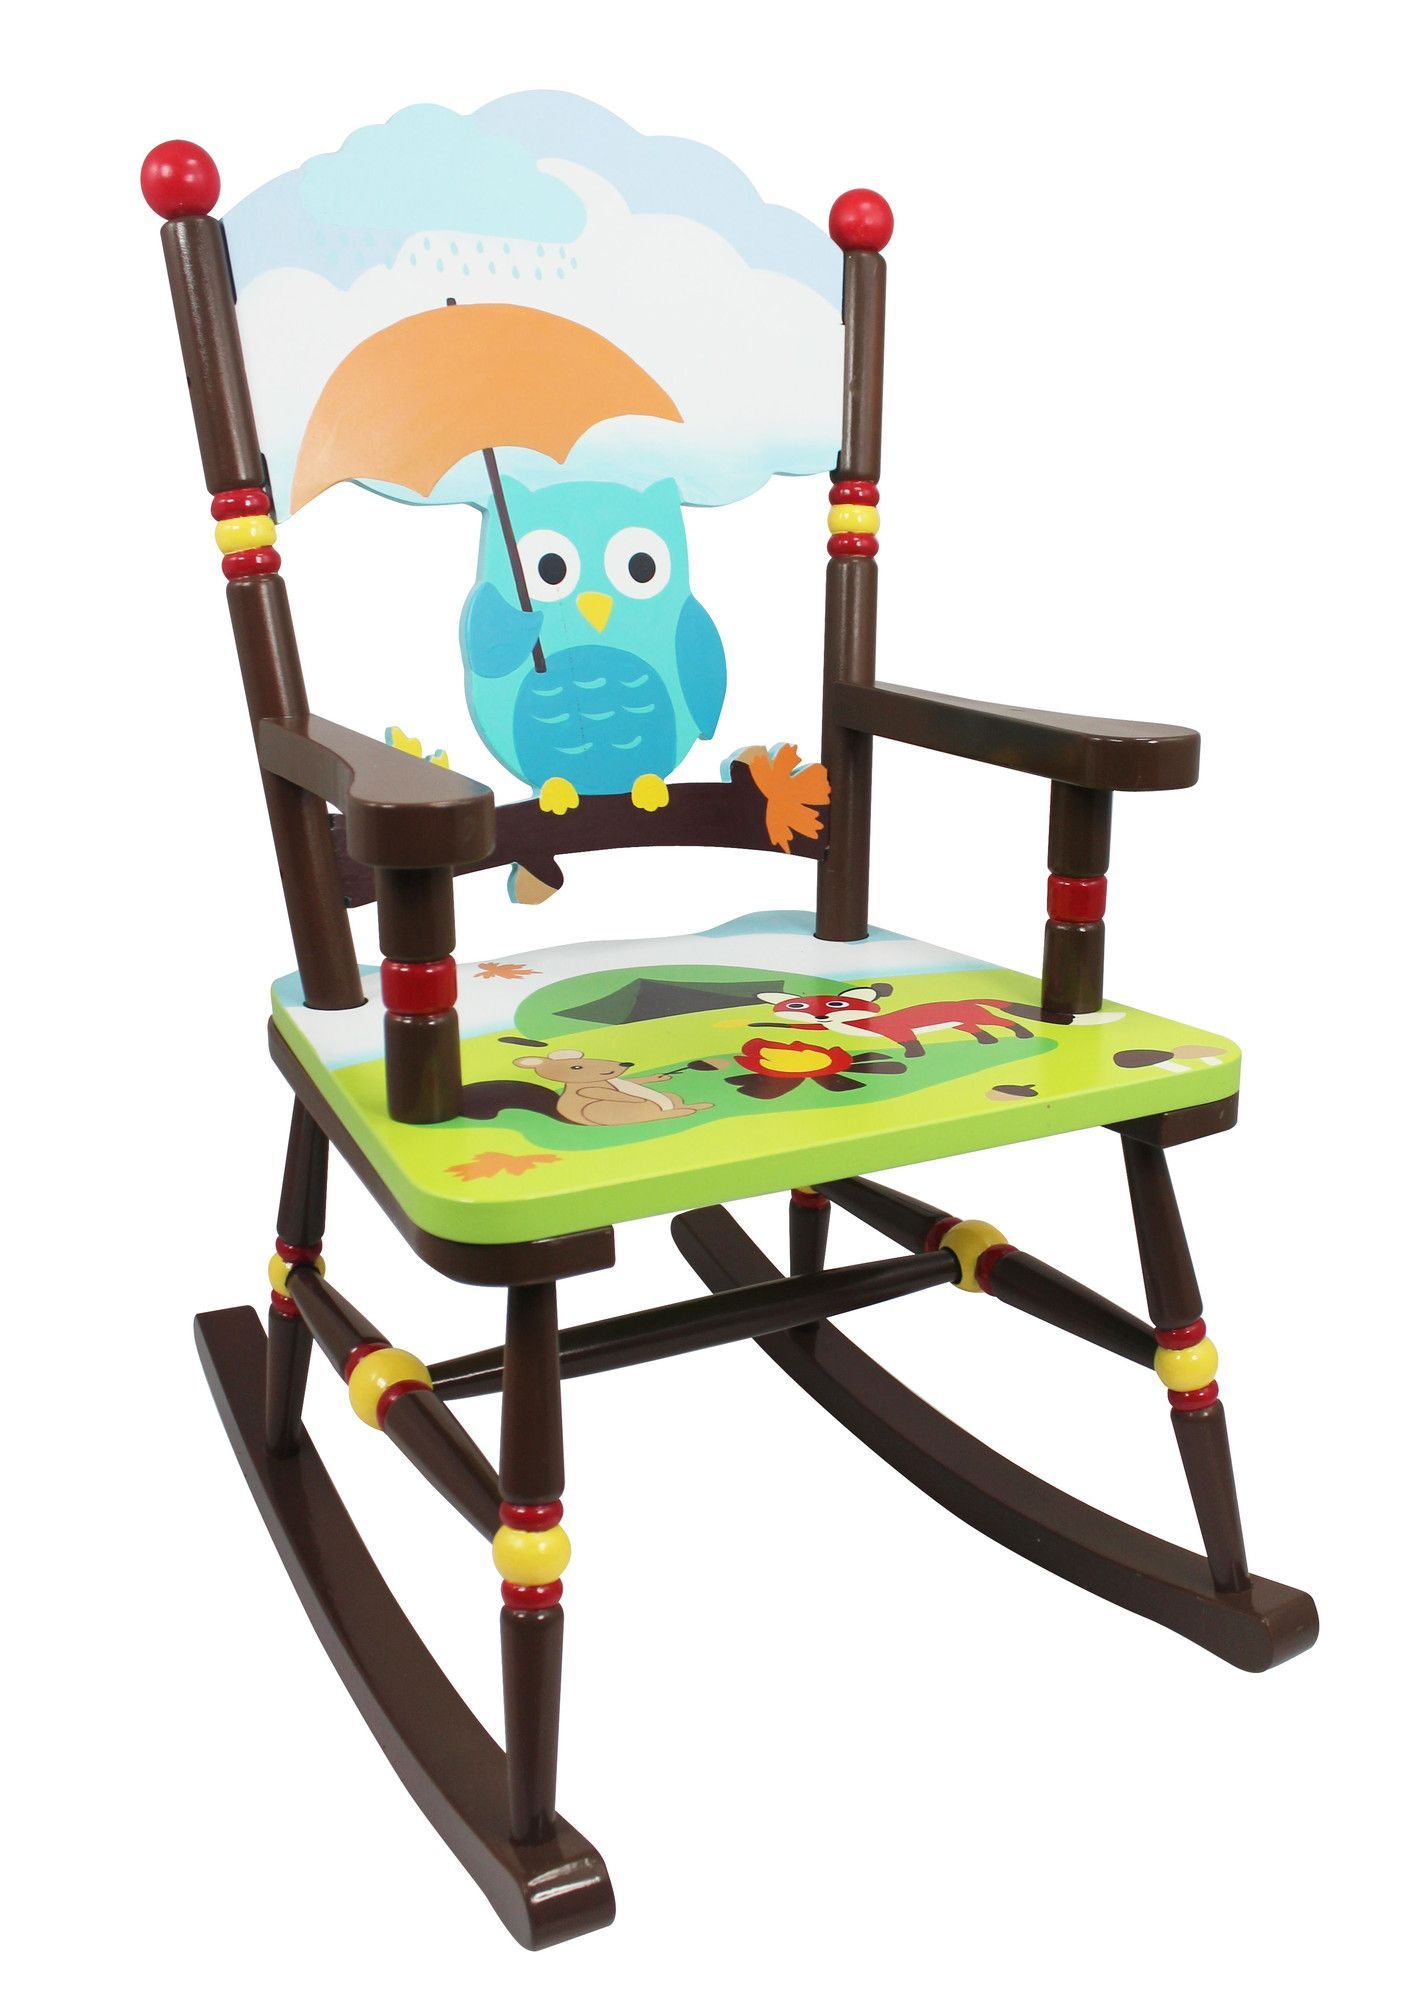 Enchanted Woodland Kids Rocking Chair Kids rocking chair